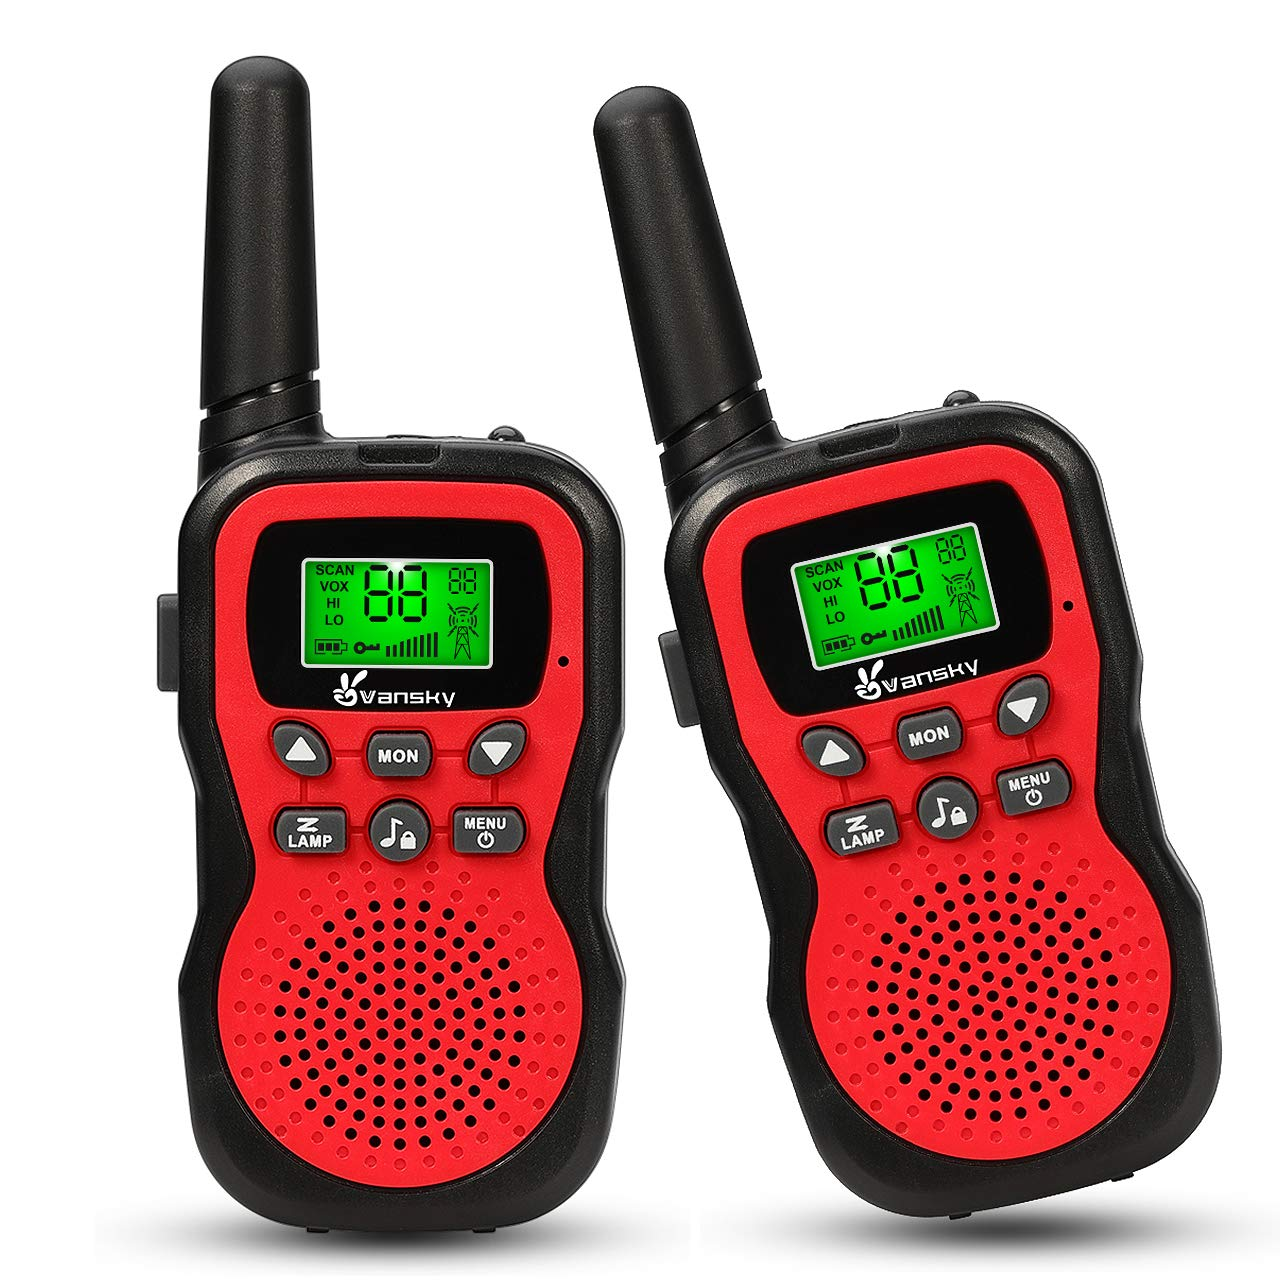 Vansky walkie Talkies for Kids - 22 Channel 2 Way Radio Long Range Built-In Flashlight